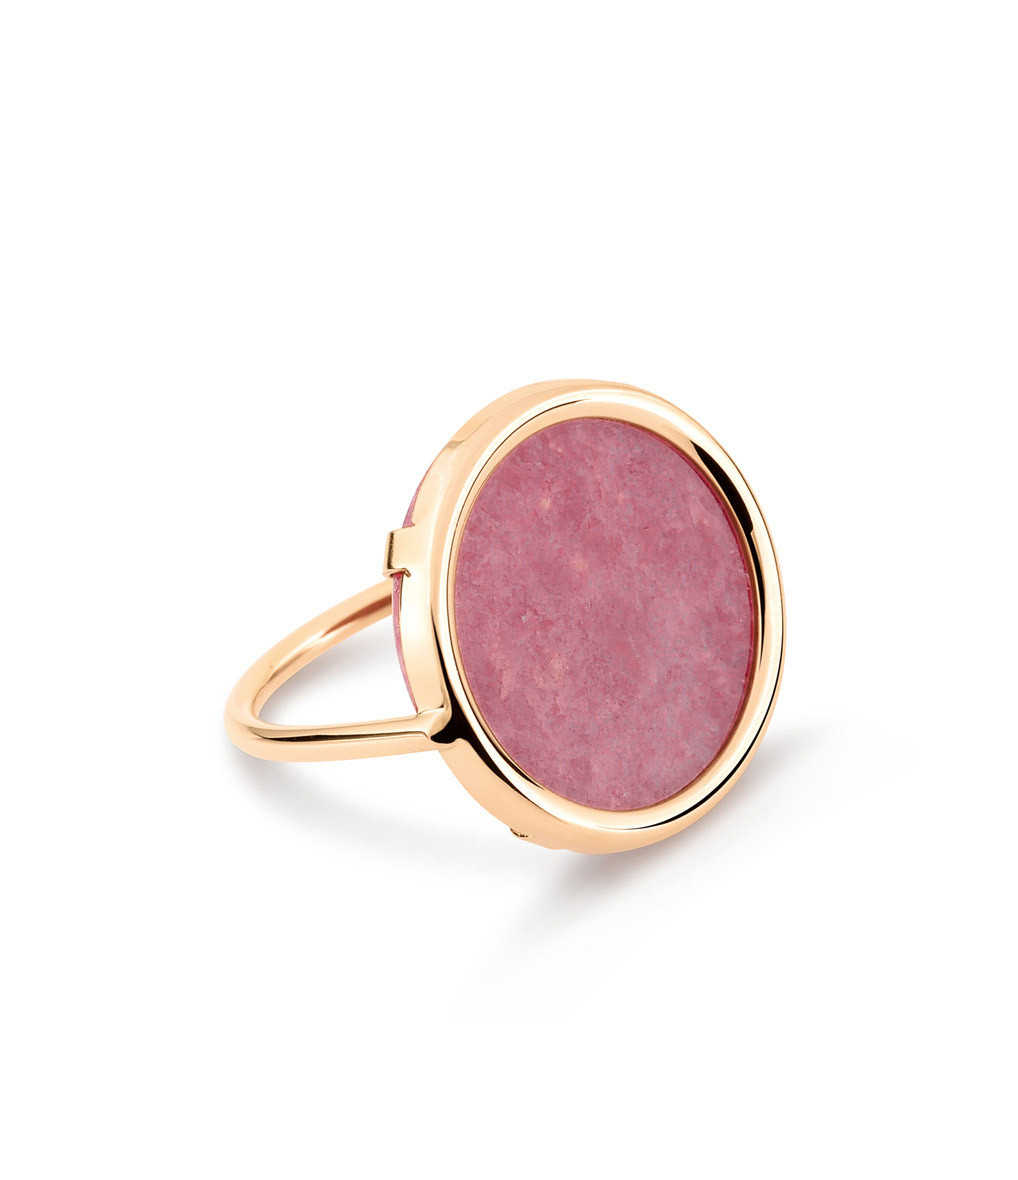 GINETTE_NY - Bague Disc Rhodonite